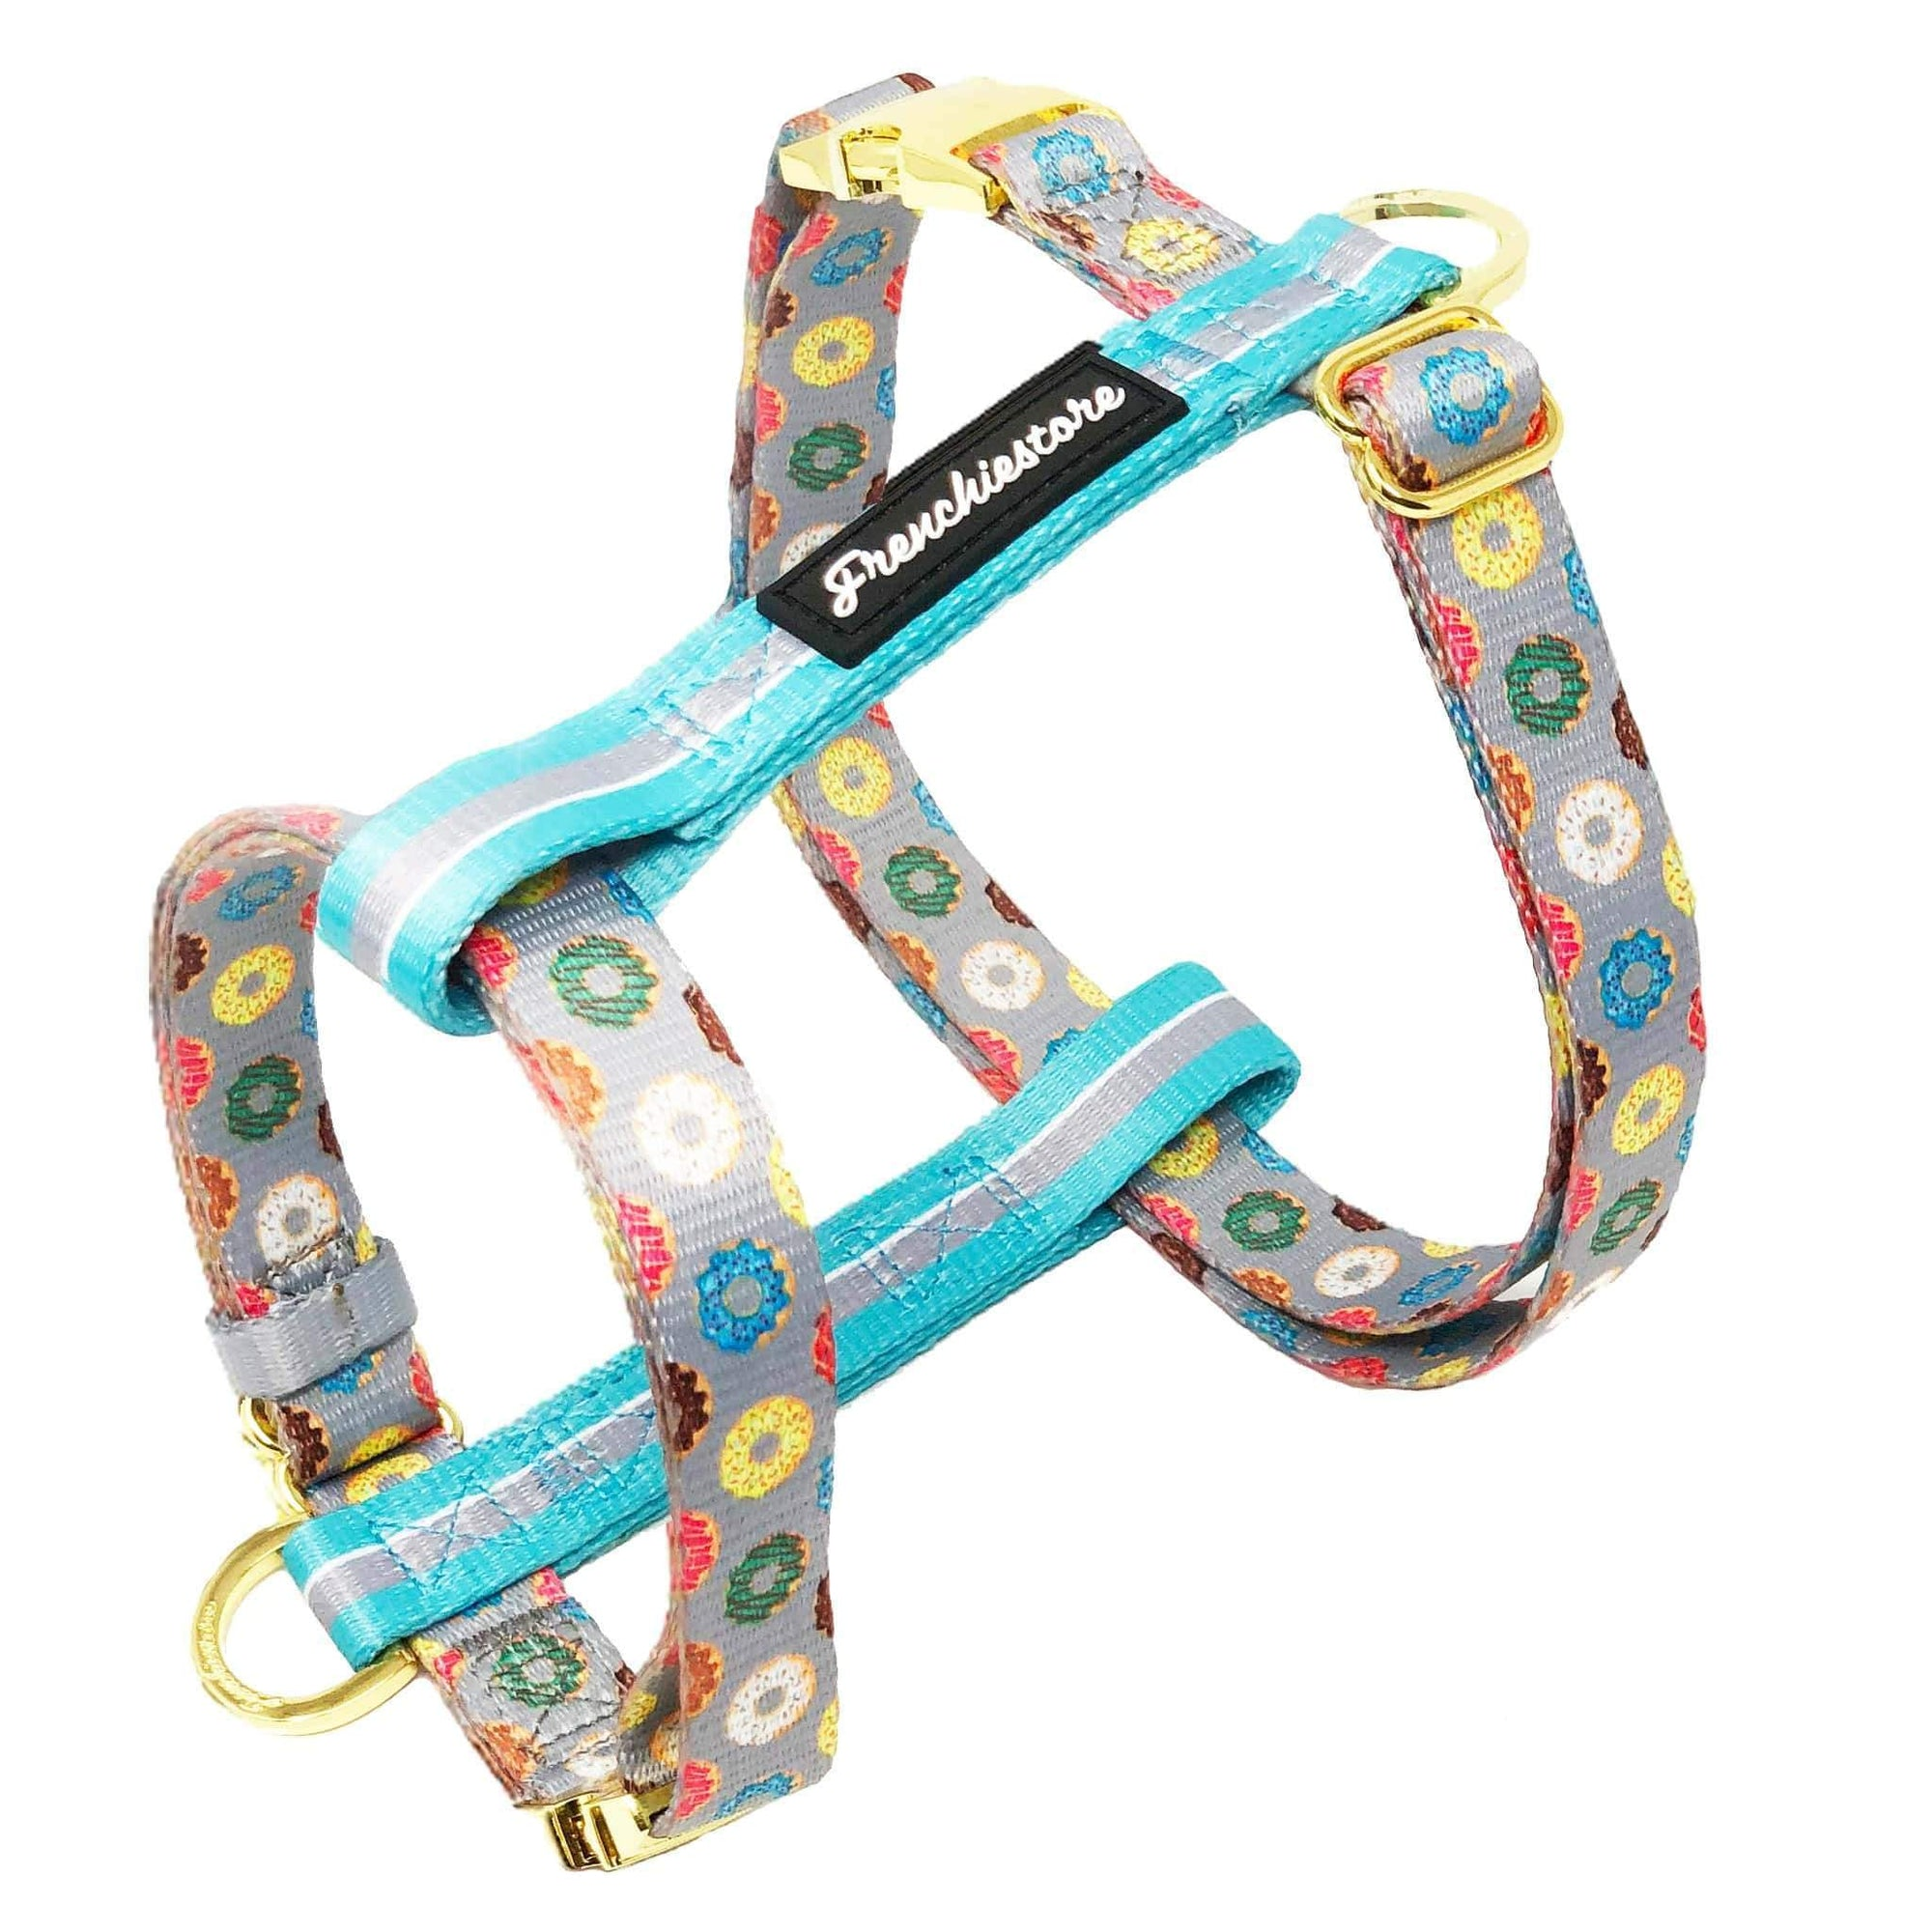 Frenchiestore Adjustable Health Harness | Mint StarPup